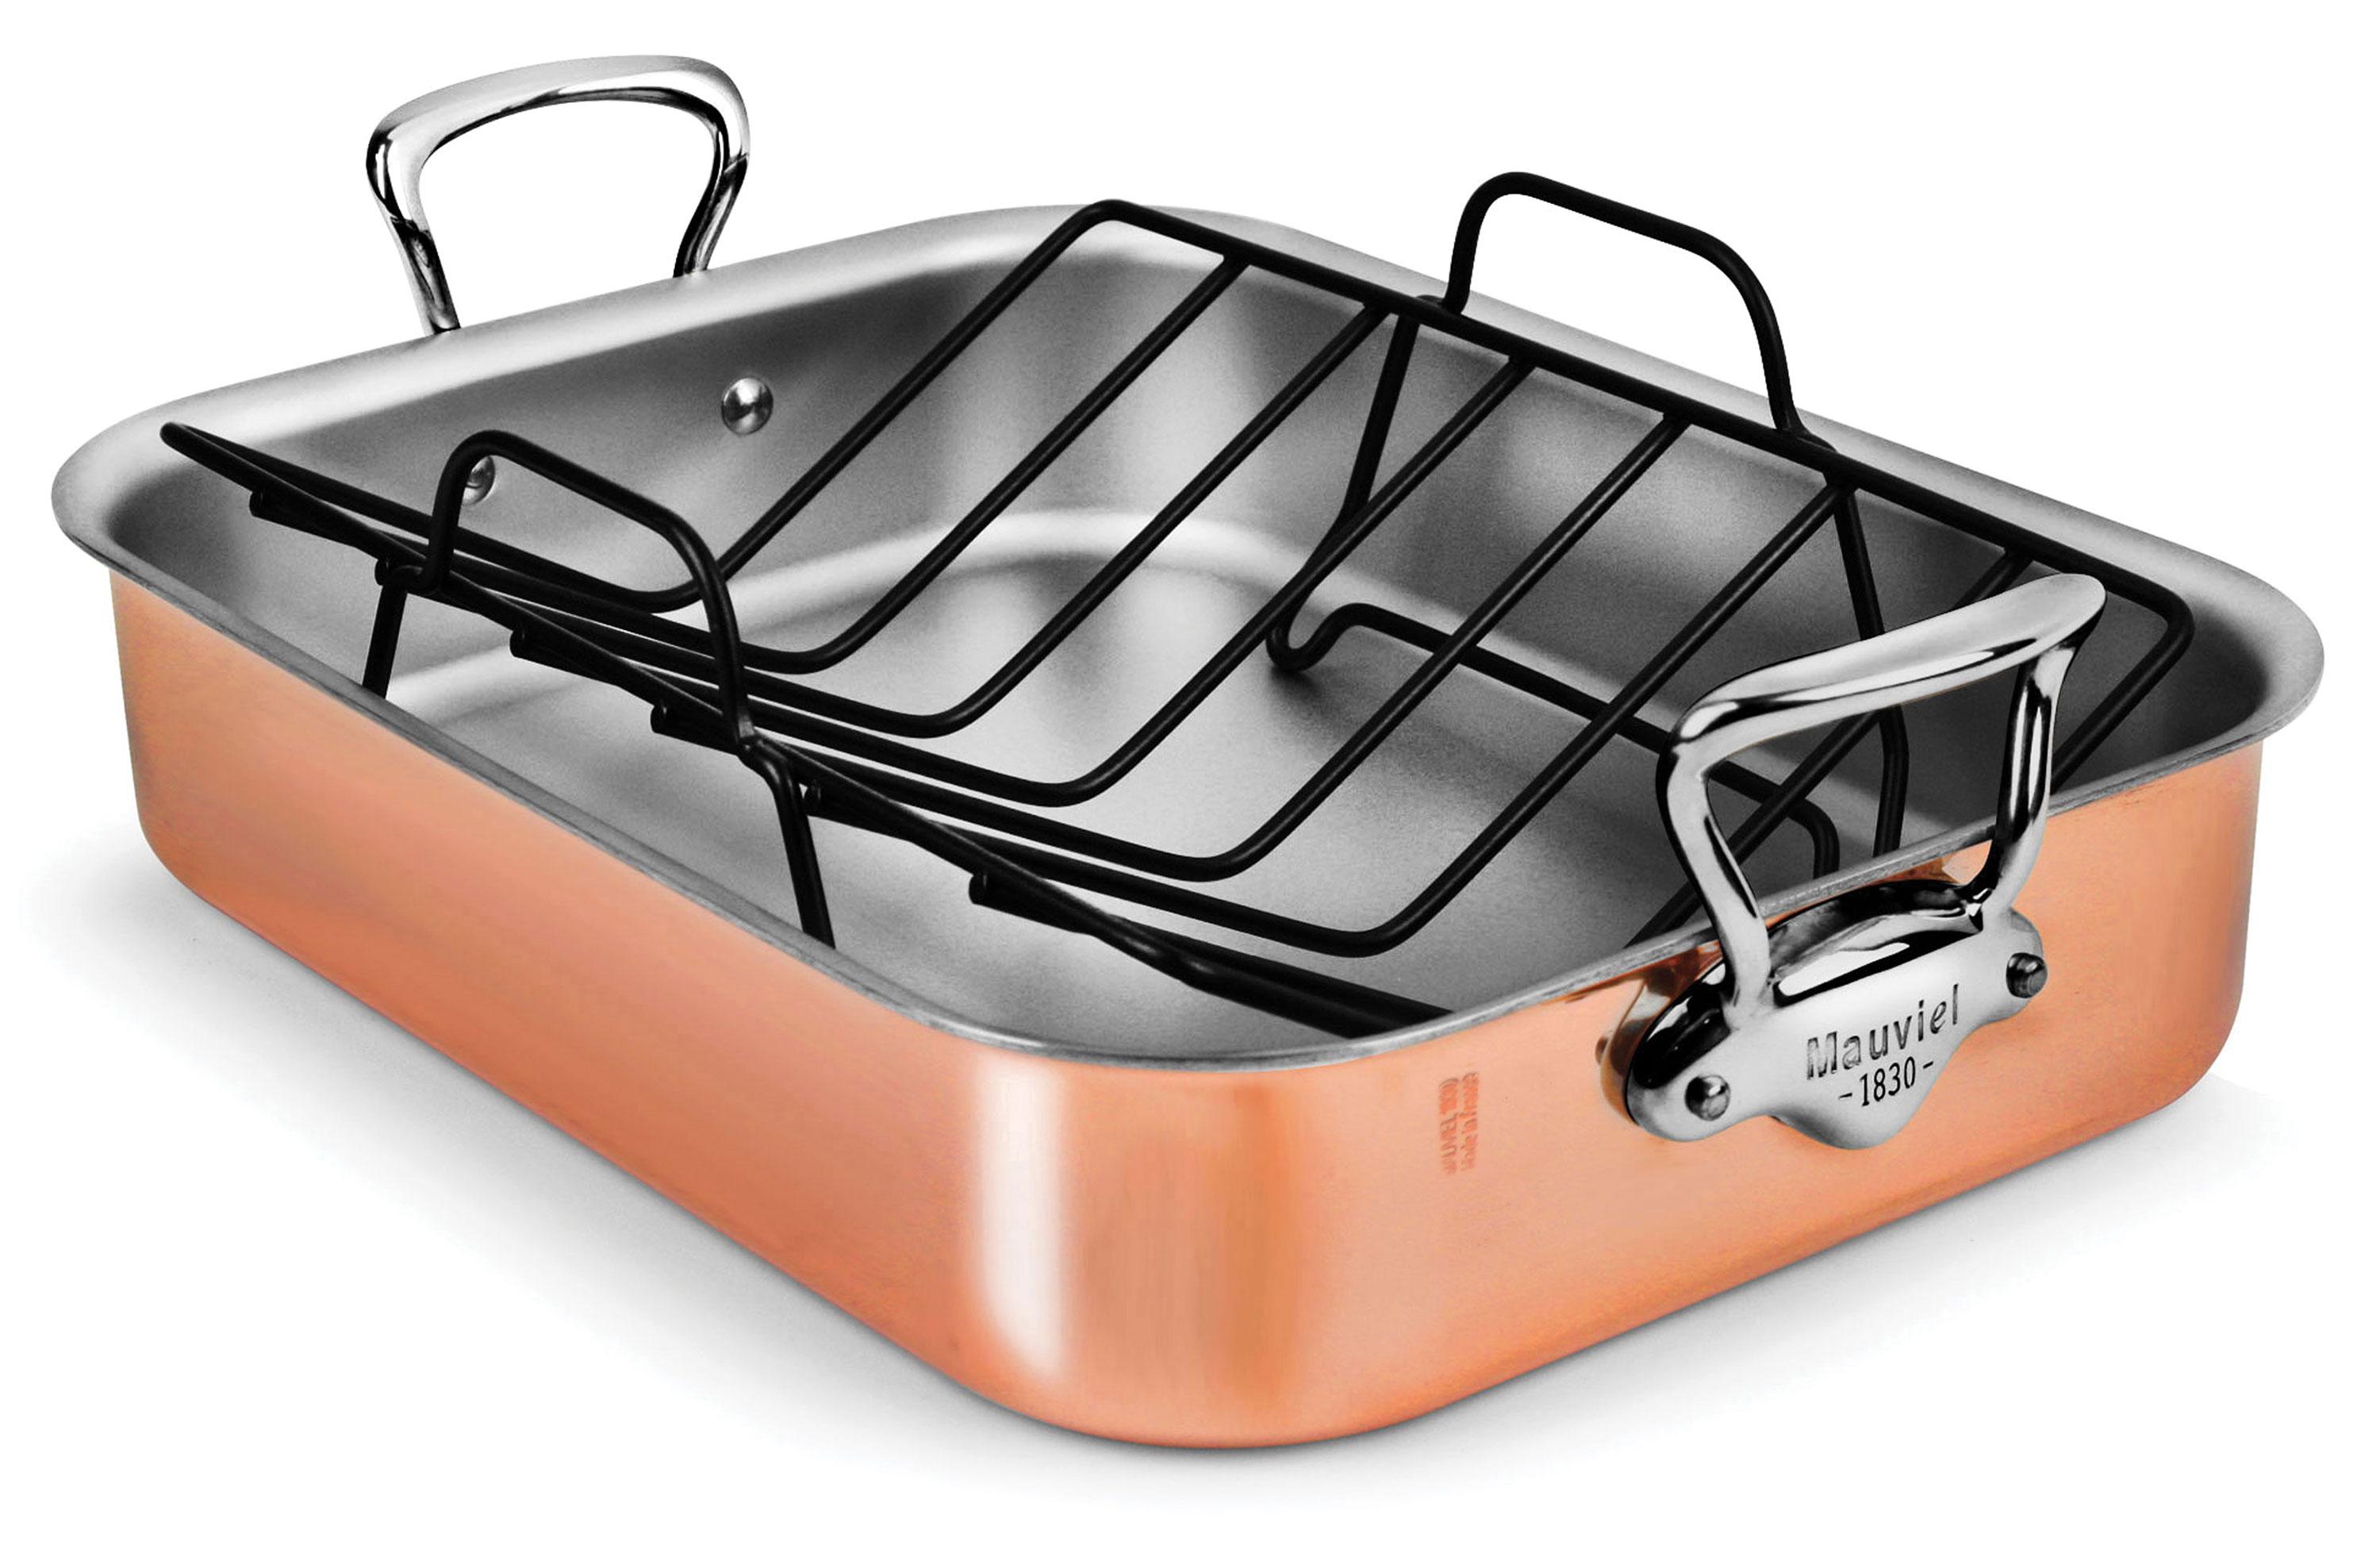 Mauviel Copper Roasting Pan With Stainless Steel Handles